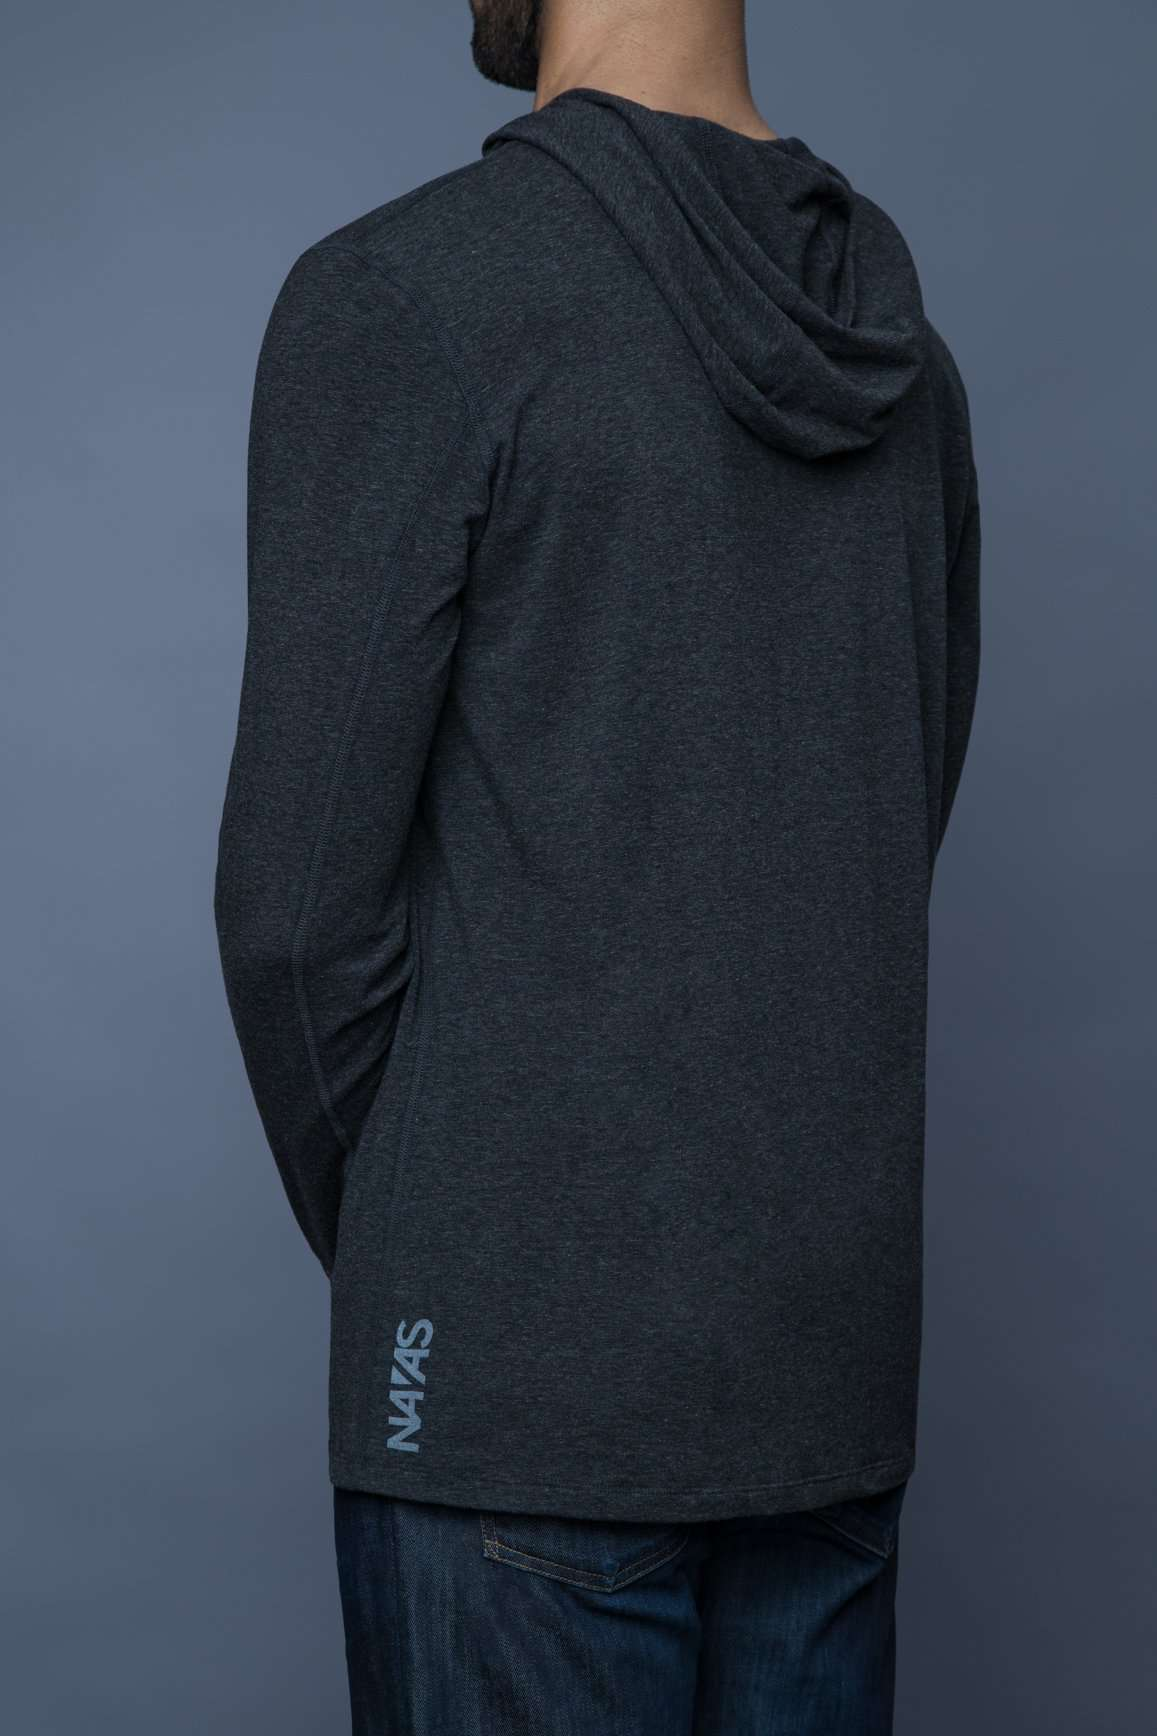 The Navas Lab Vasquez Microstripe long-sleeve hooded shirt for tall guys in Charcoal mix. The perfect tall slim shirt for tall and slim guys looking for style and comfort.